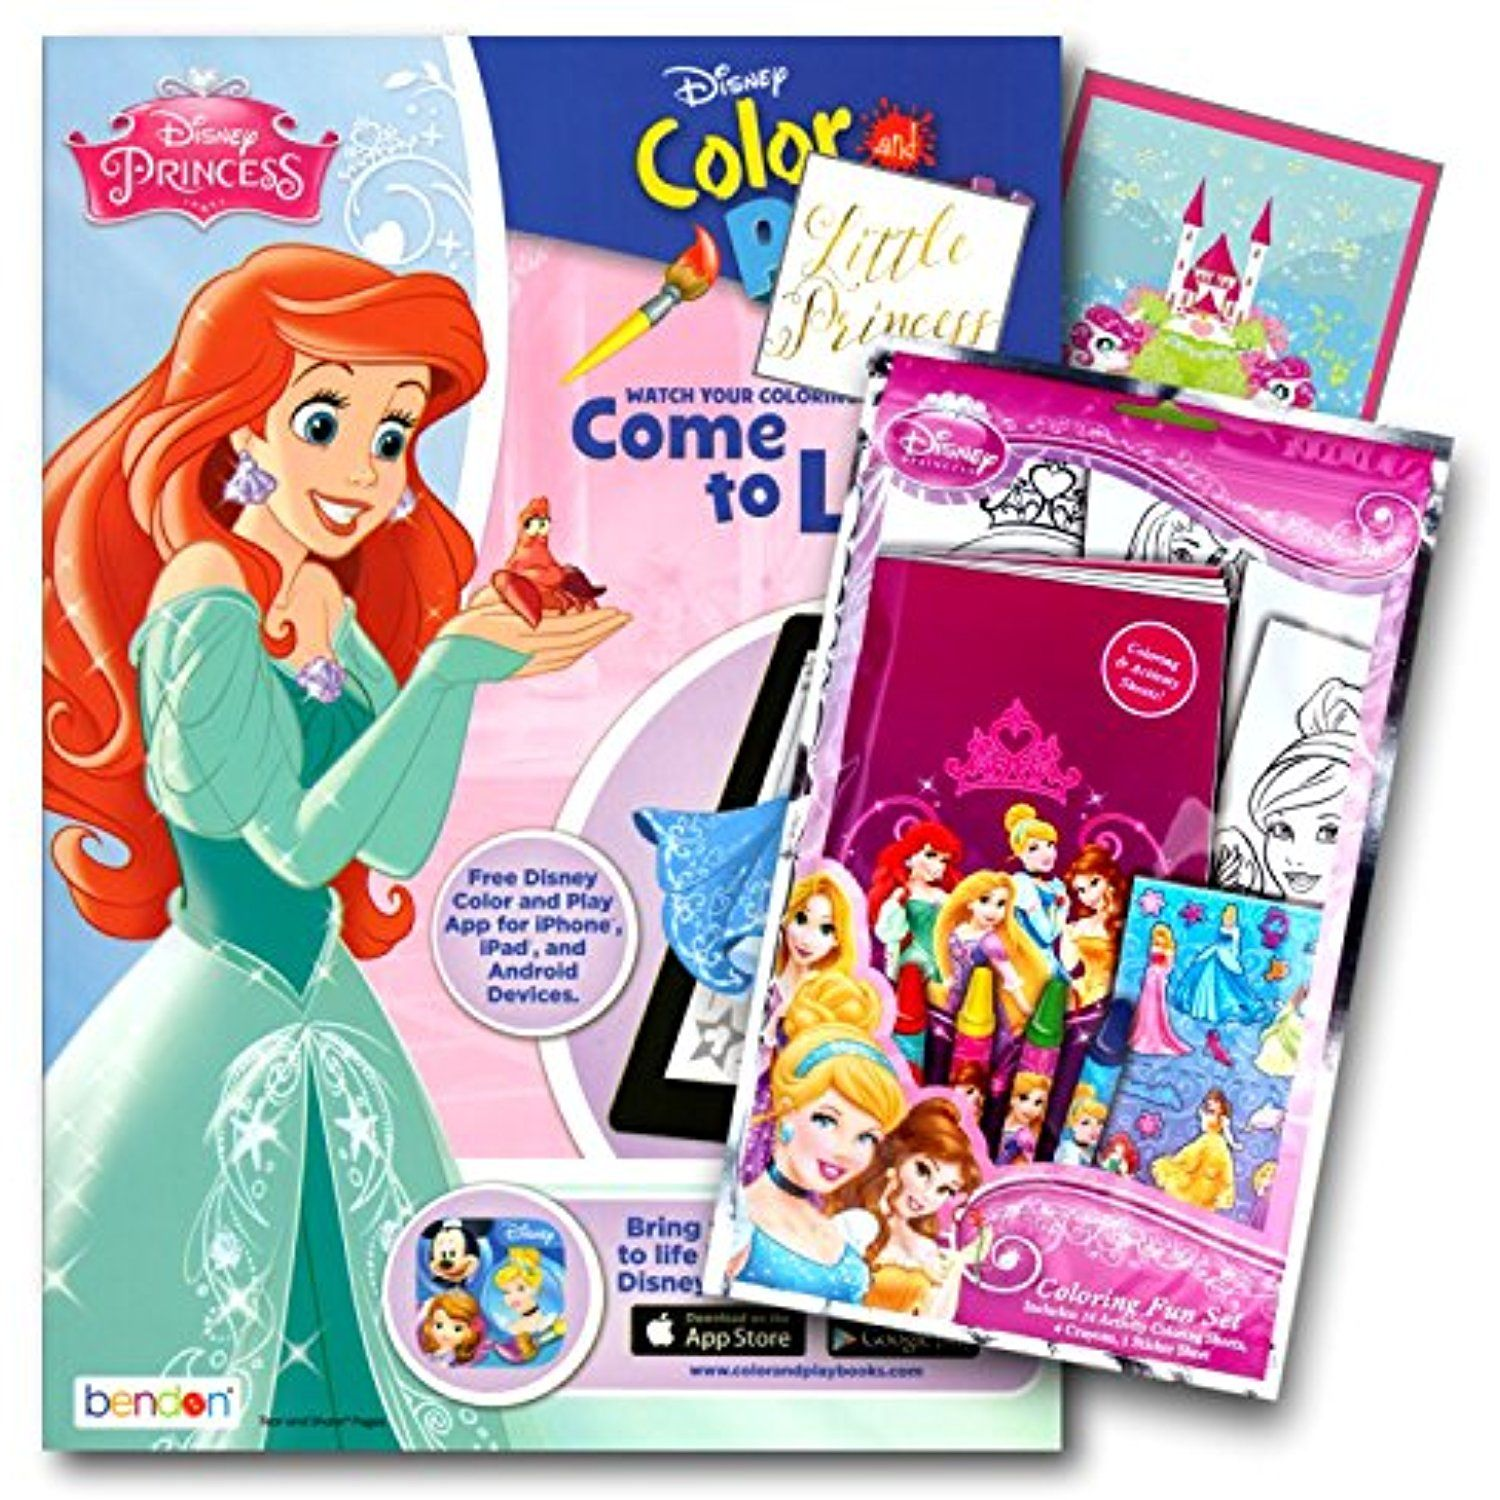 Disney Princess Coloring Book Pack With Stickers Crayons And Activity Bundled 2 Separately Licensed GWW Specialty Reward